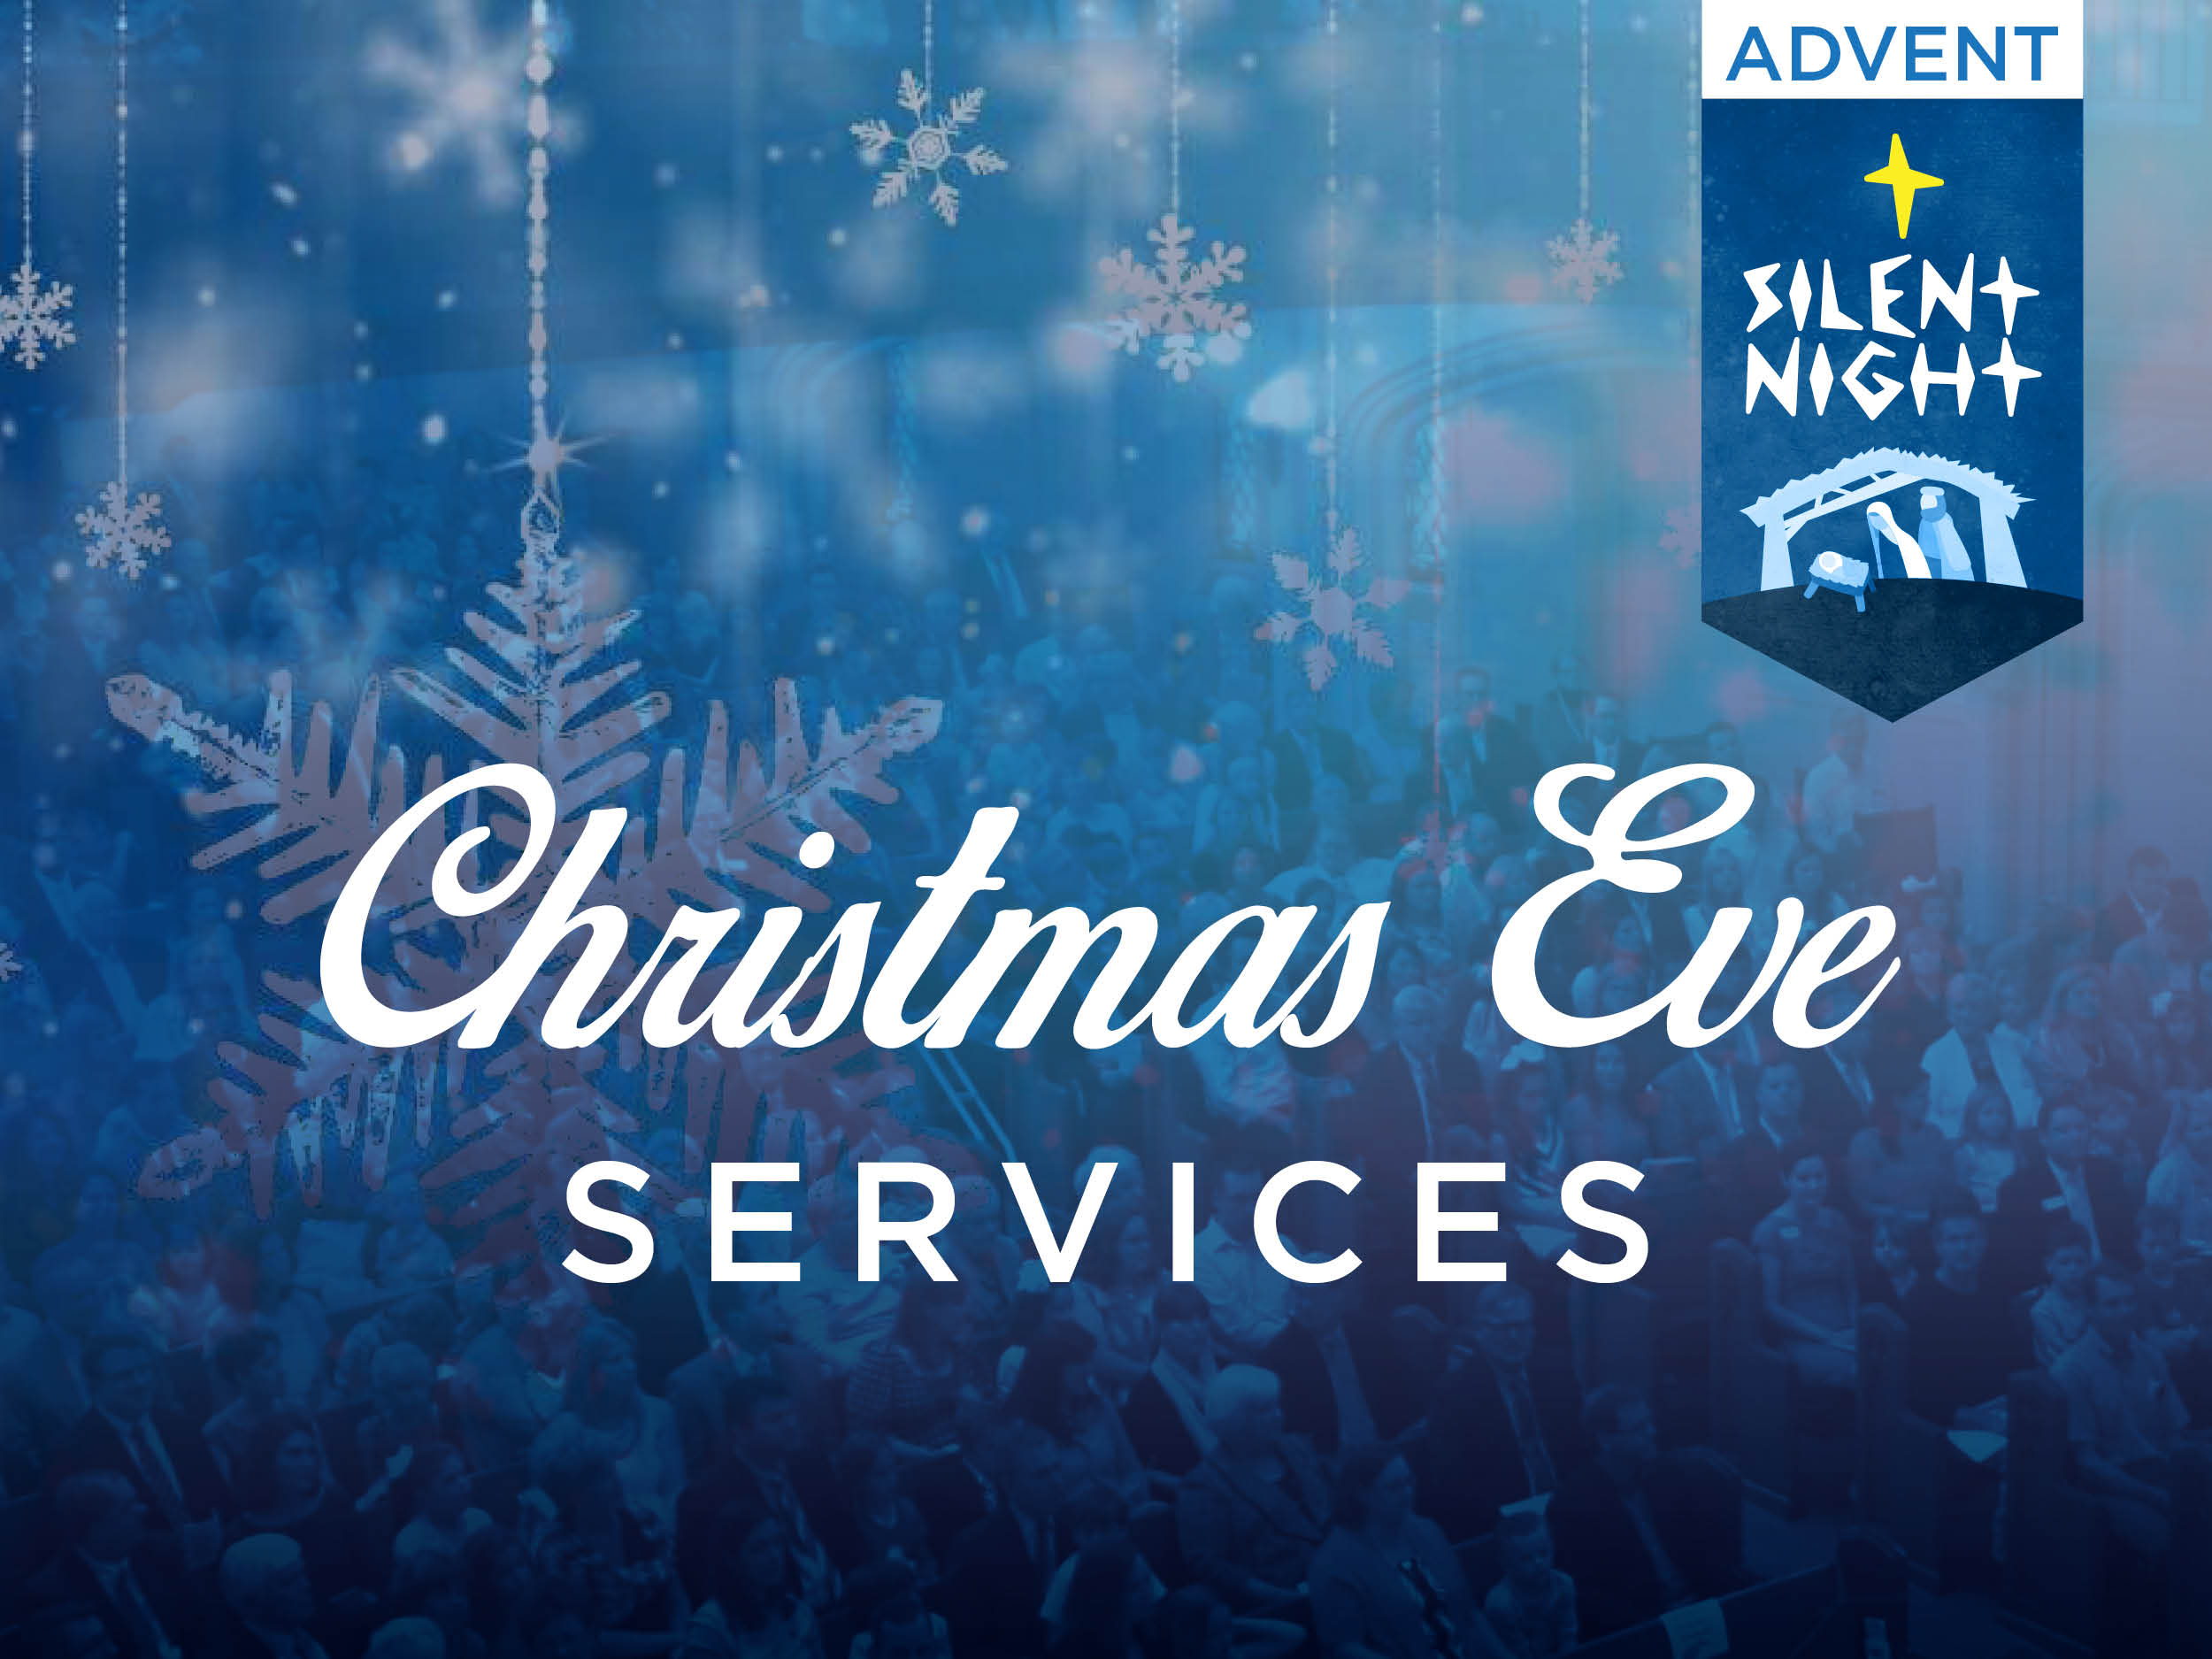 Christmas Church Services Near Me.Christmas Eve Services First United Methodist Church Of Fort Worth